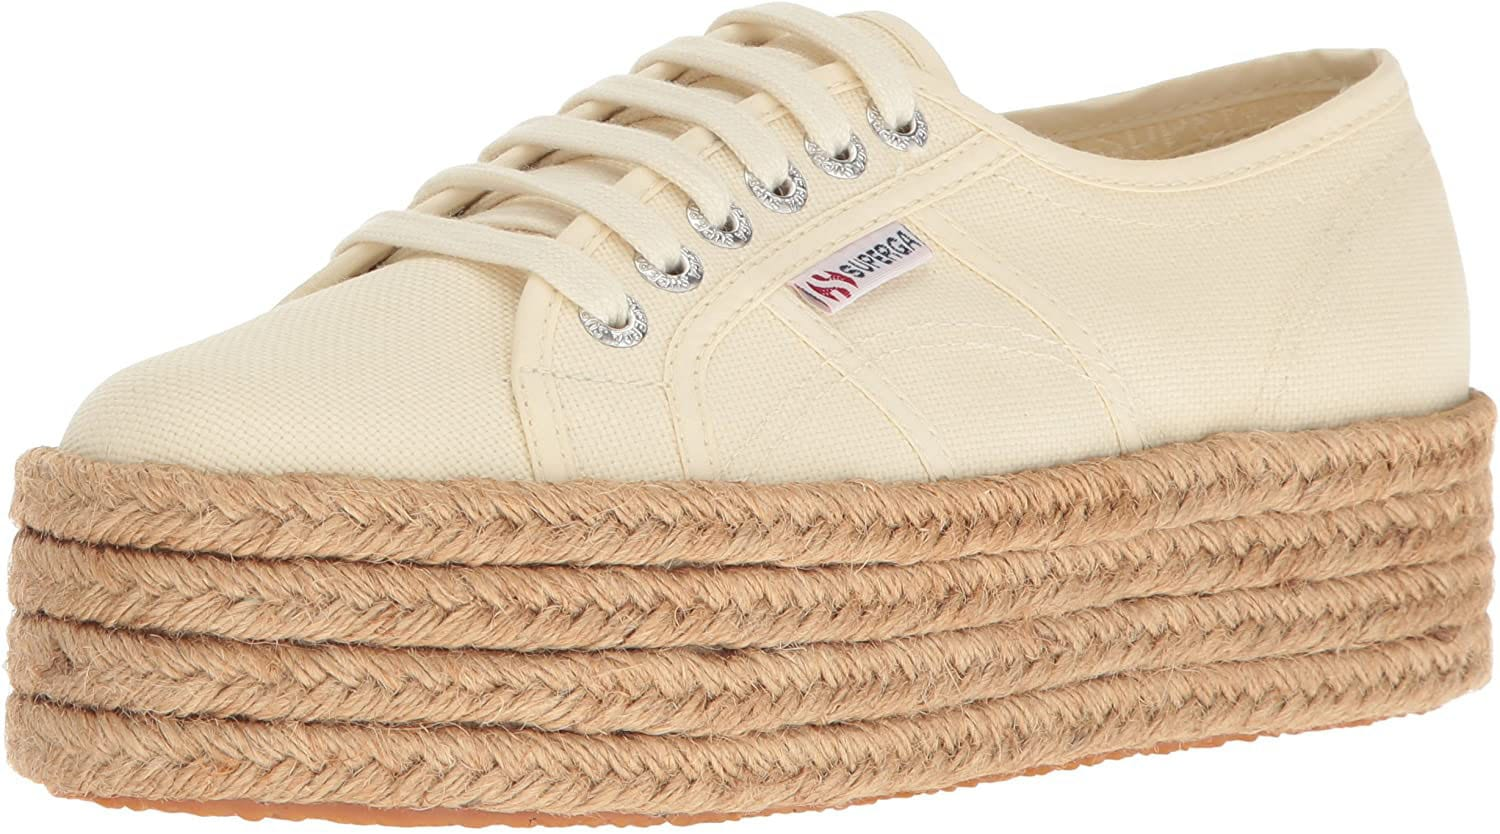 Give your floral dress a boyish twist with these elevated Superga espadrille sneakers